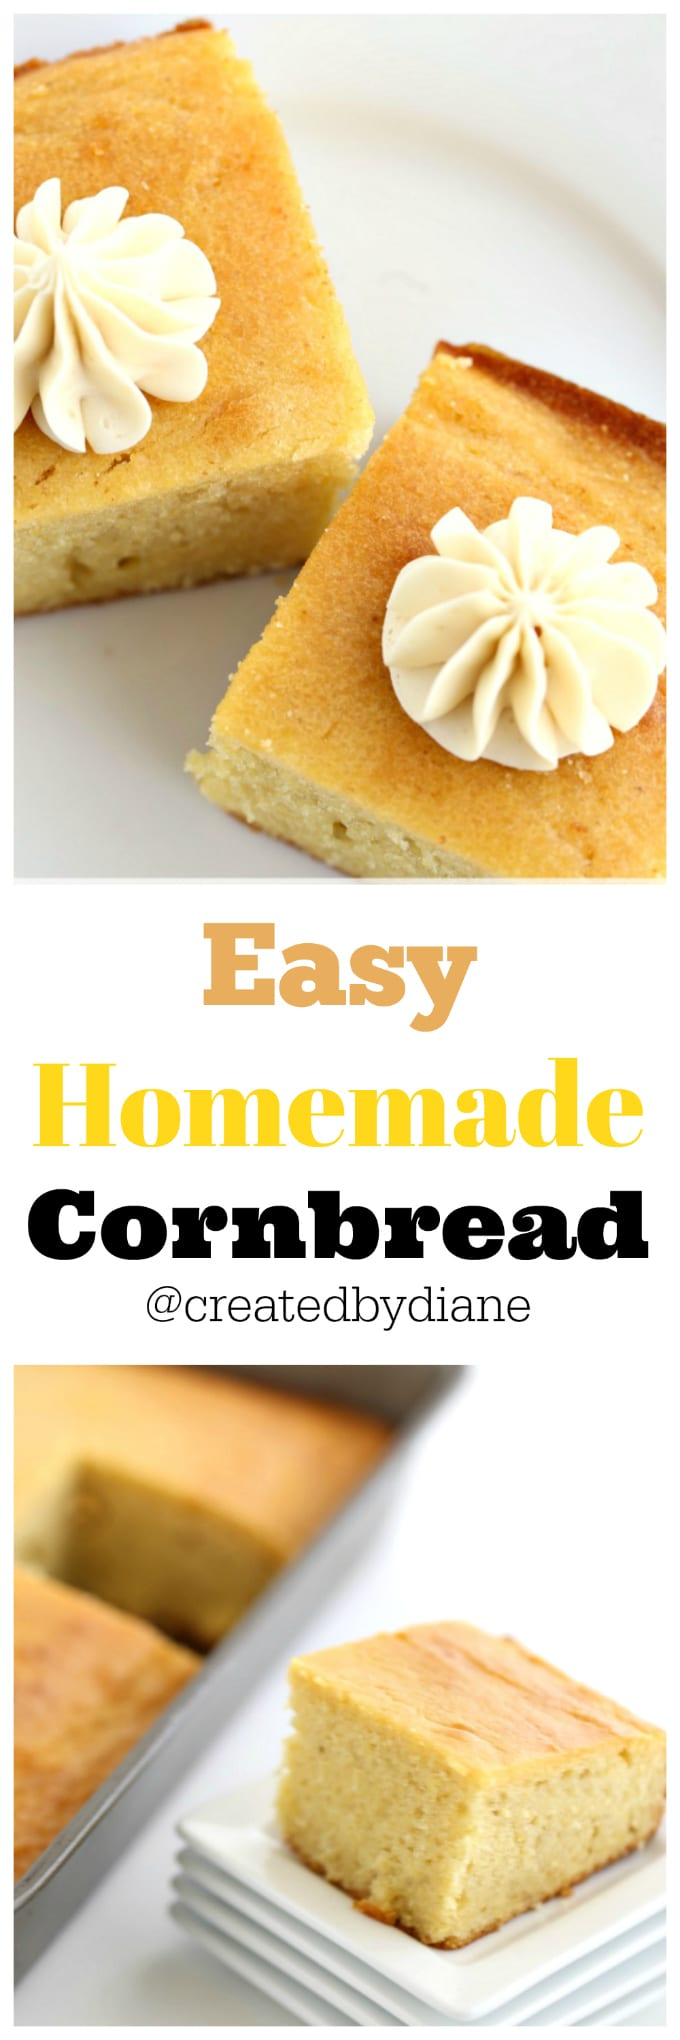 easy homemade cornbread and honey butter recipe from @createdbydiane